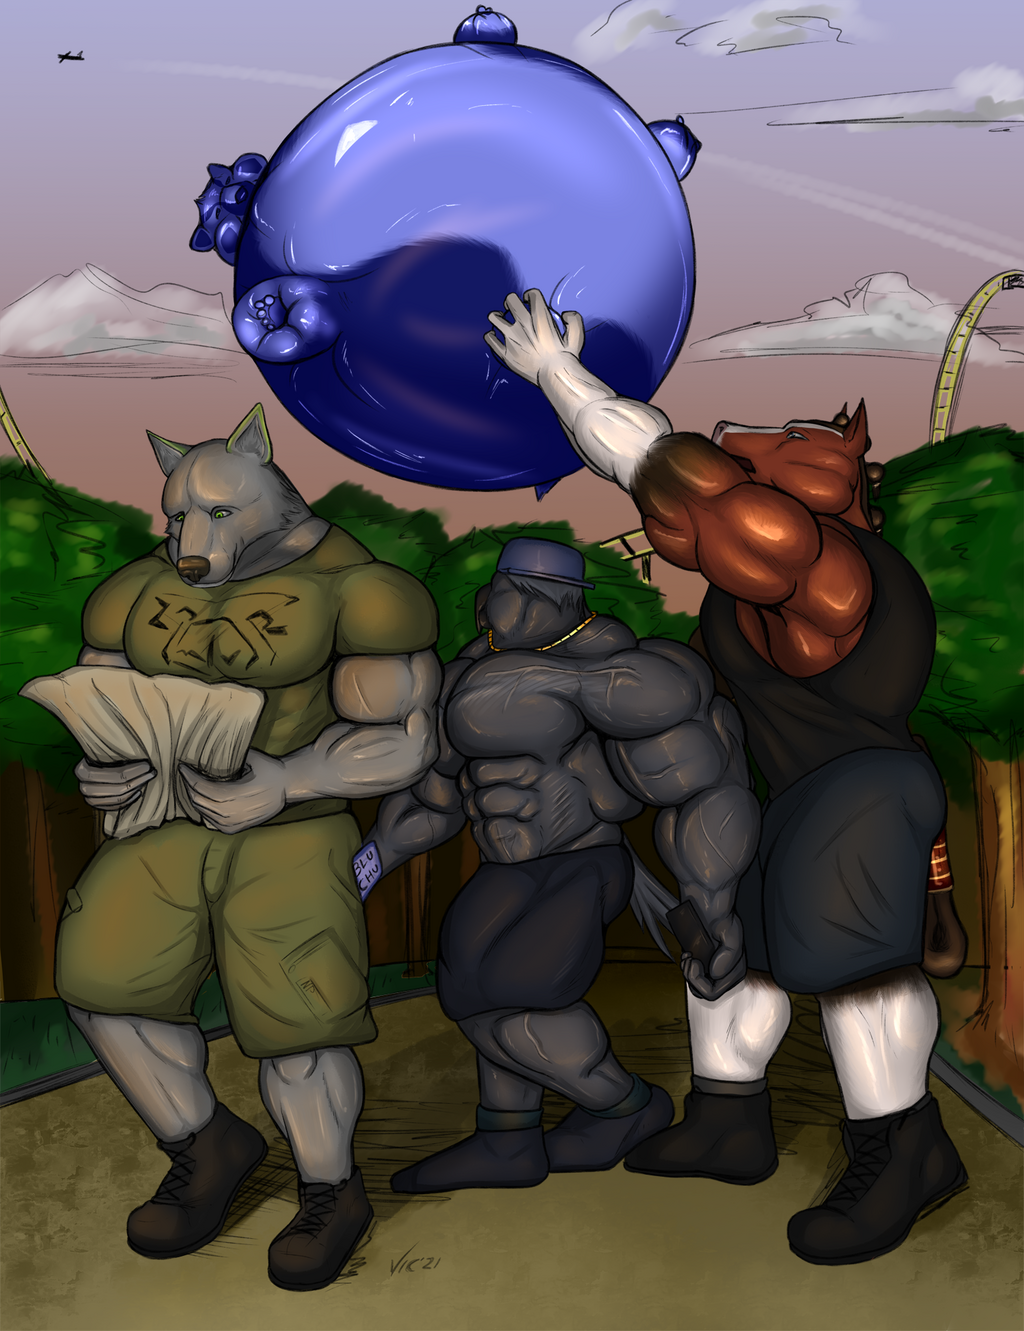 Most recent image: Balloon Day At The Park